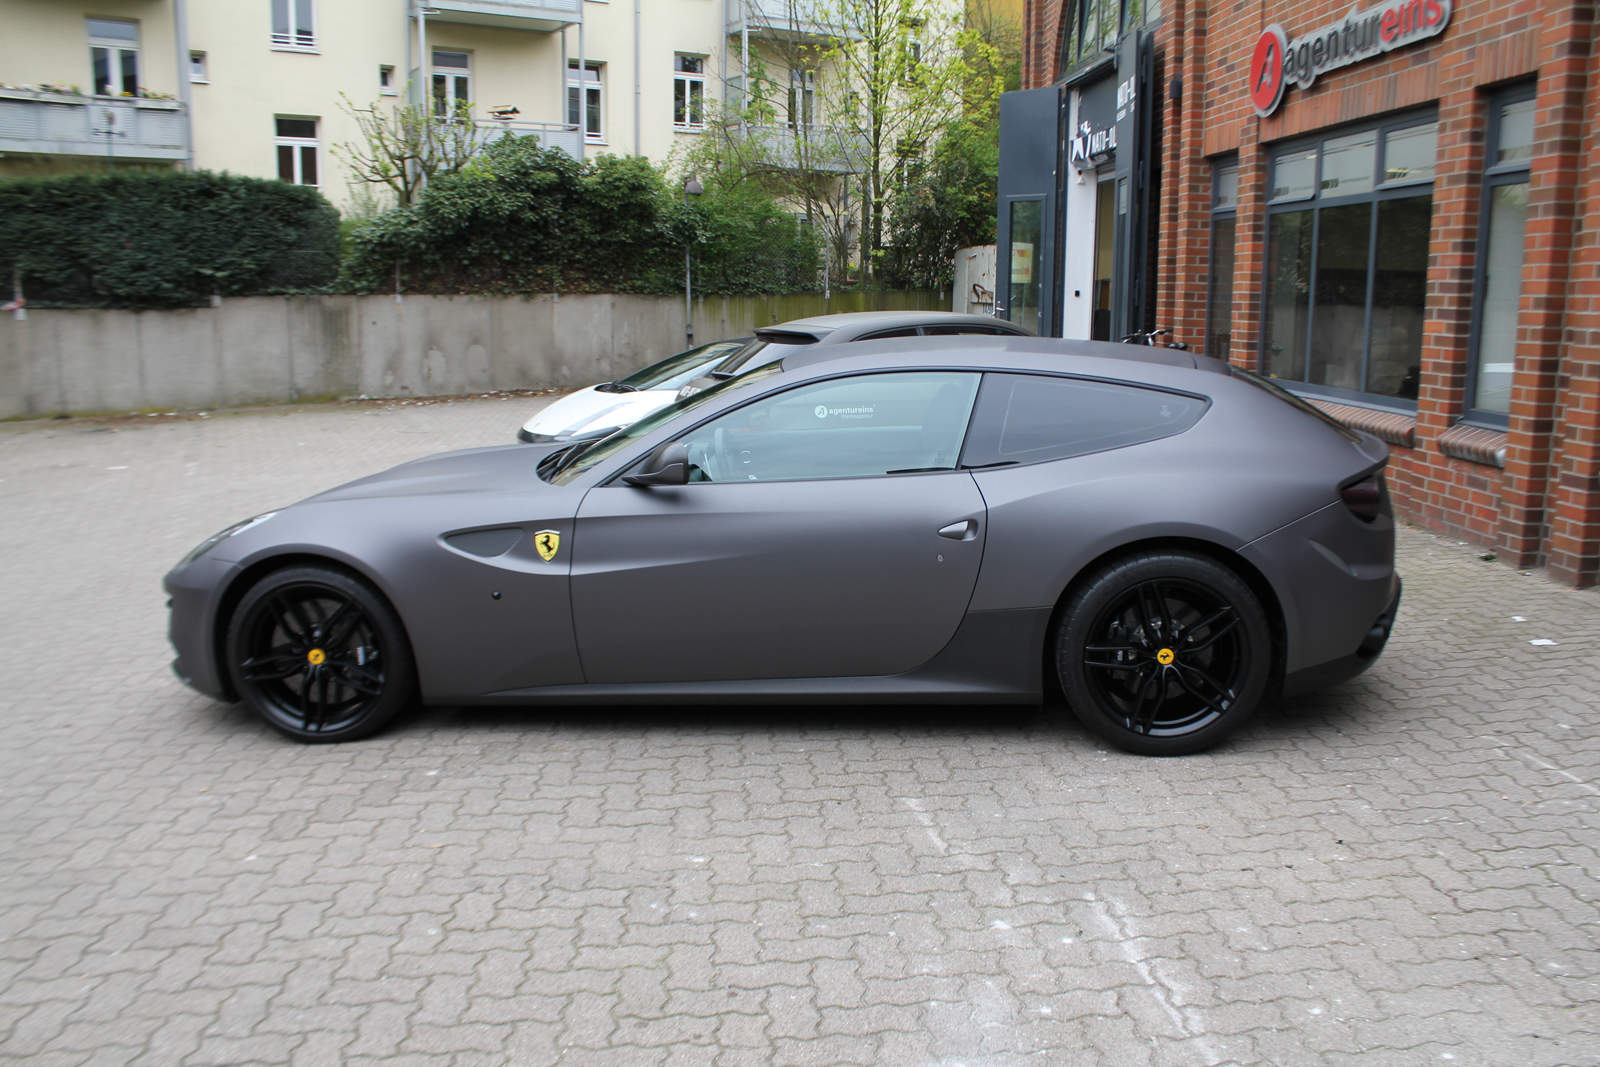 ferrari ff in anthrazit matt metallic und schwarz gebuerstet nato. Black Bedroom Furniture Sets. Home Design Ideas